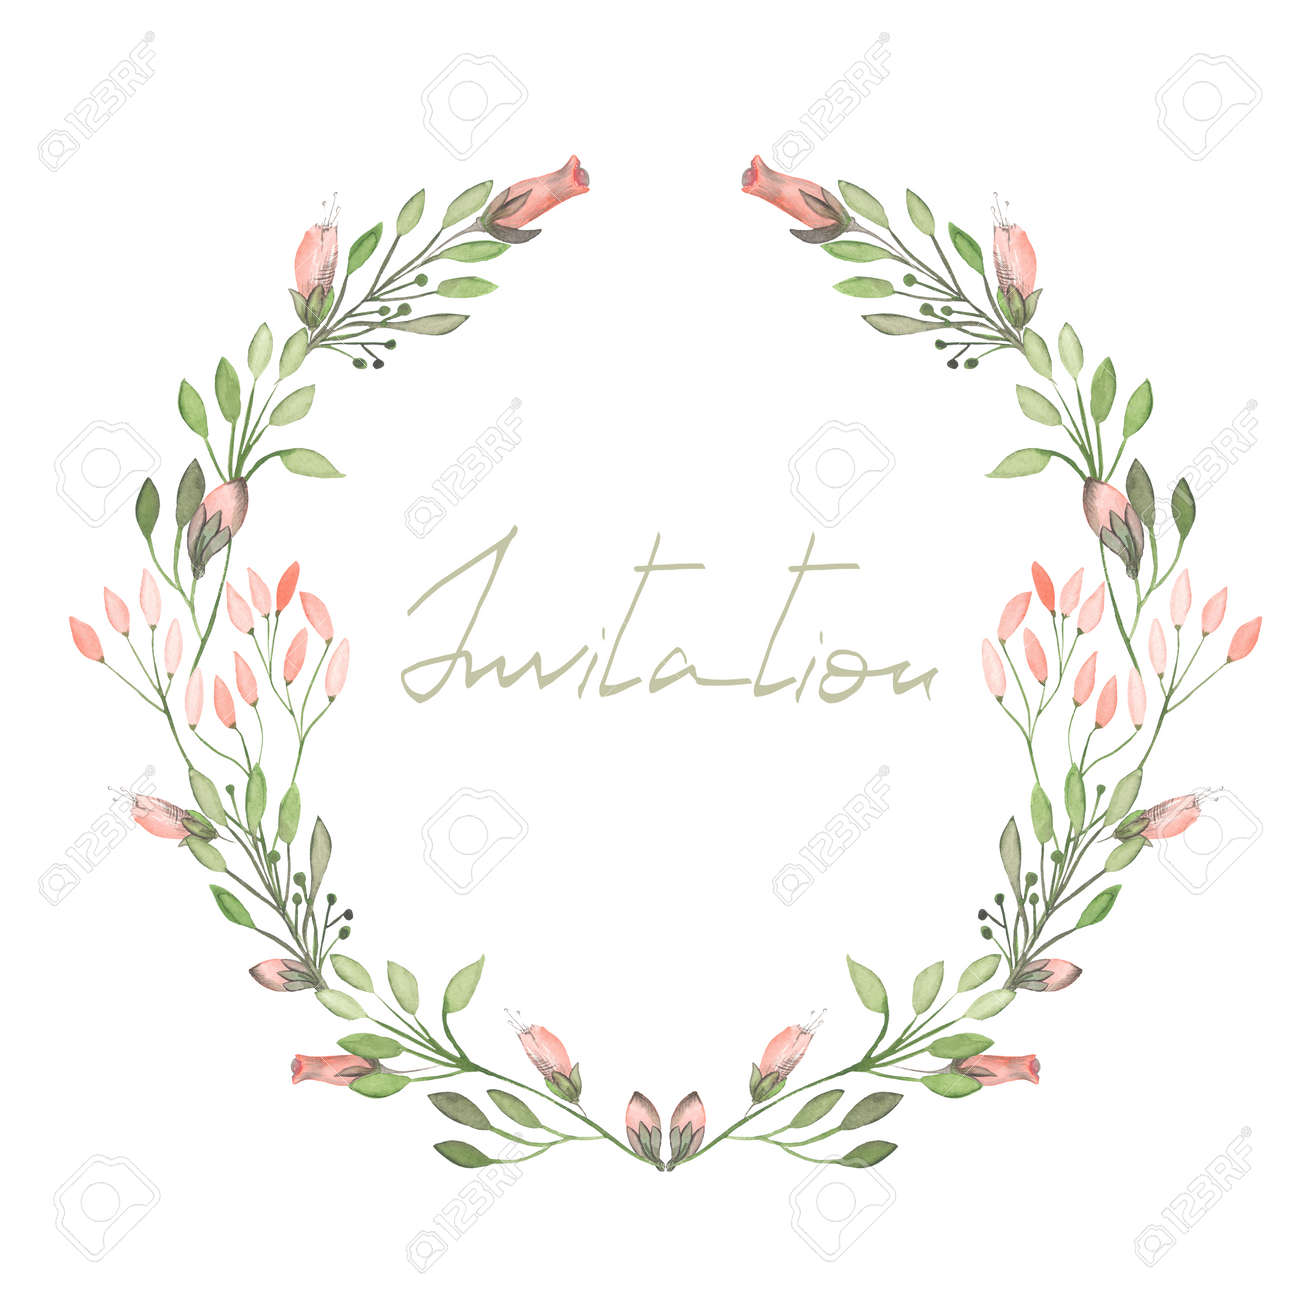 Floral design in circle stock vector image 75615991 - 47672615 Circle Frame Wreath Of Pink Flowers And Branches With Green Leaves Painted In Watercolor On